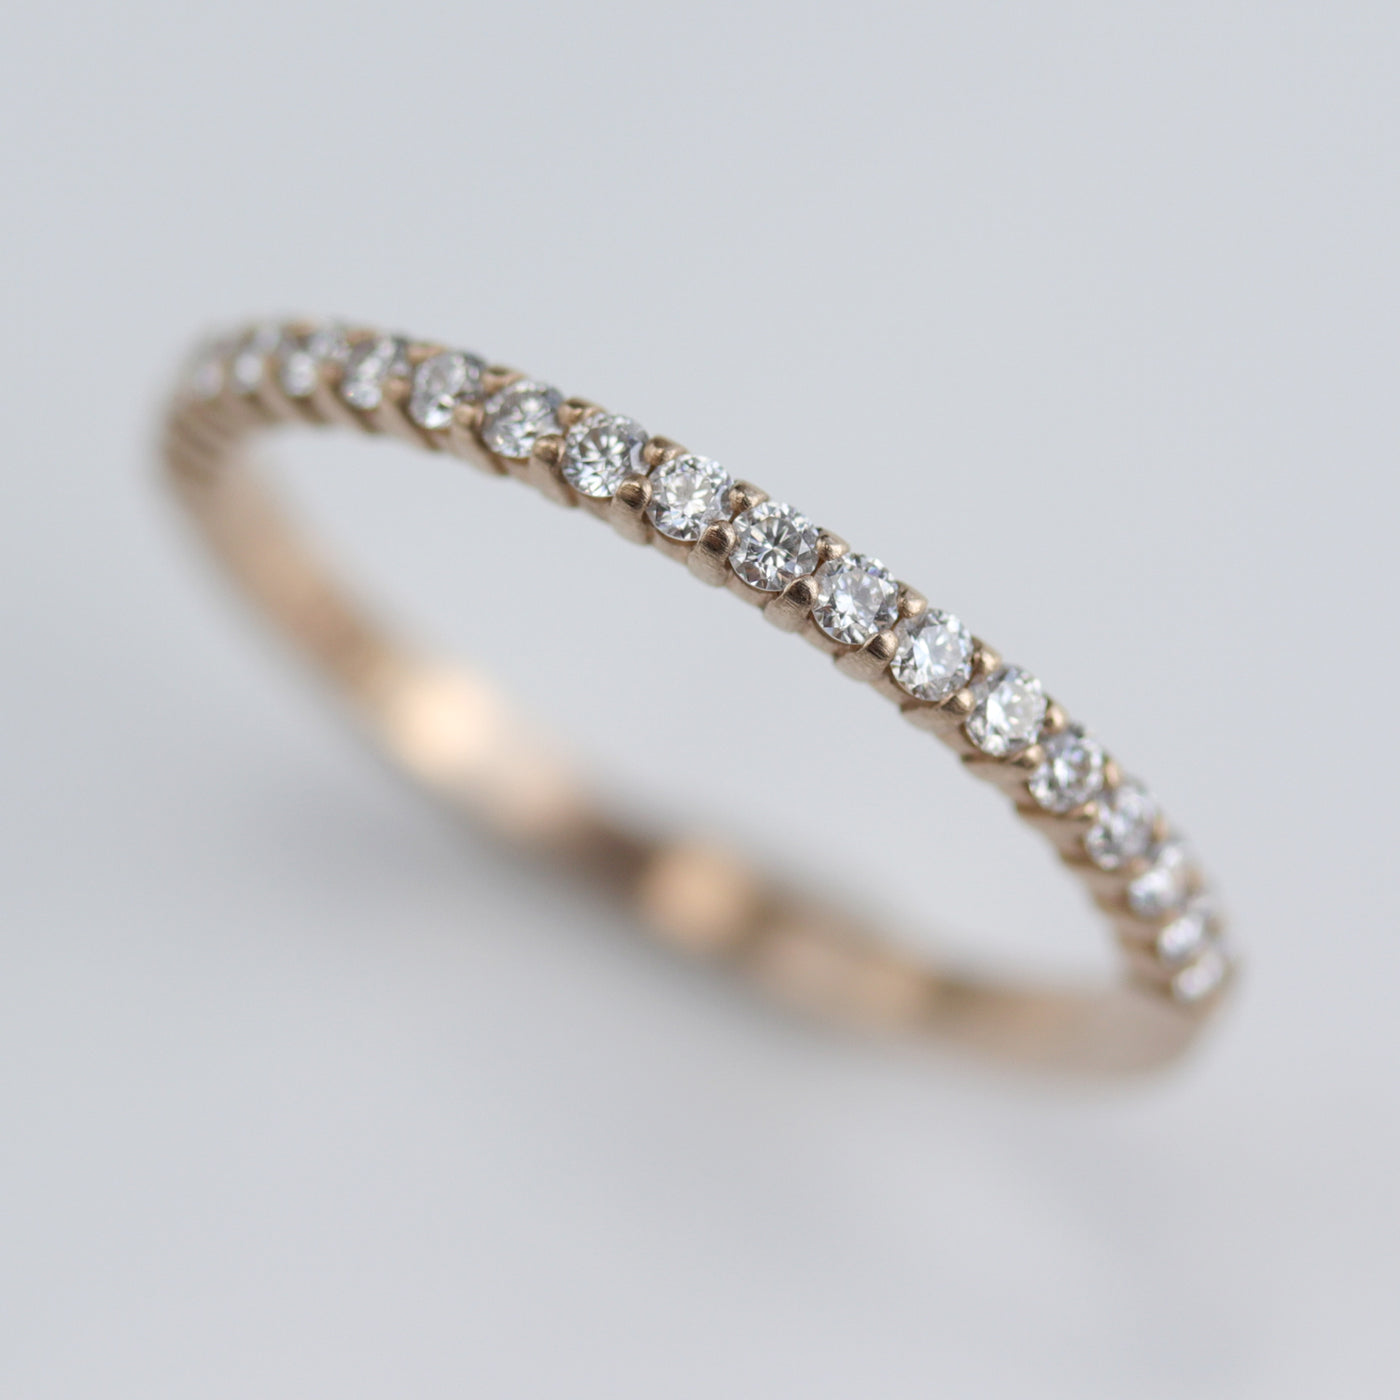 Size 7.25 - Diamond Scalloped Half Eternity Band